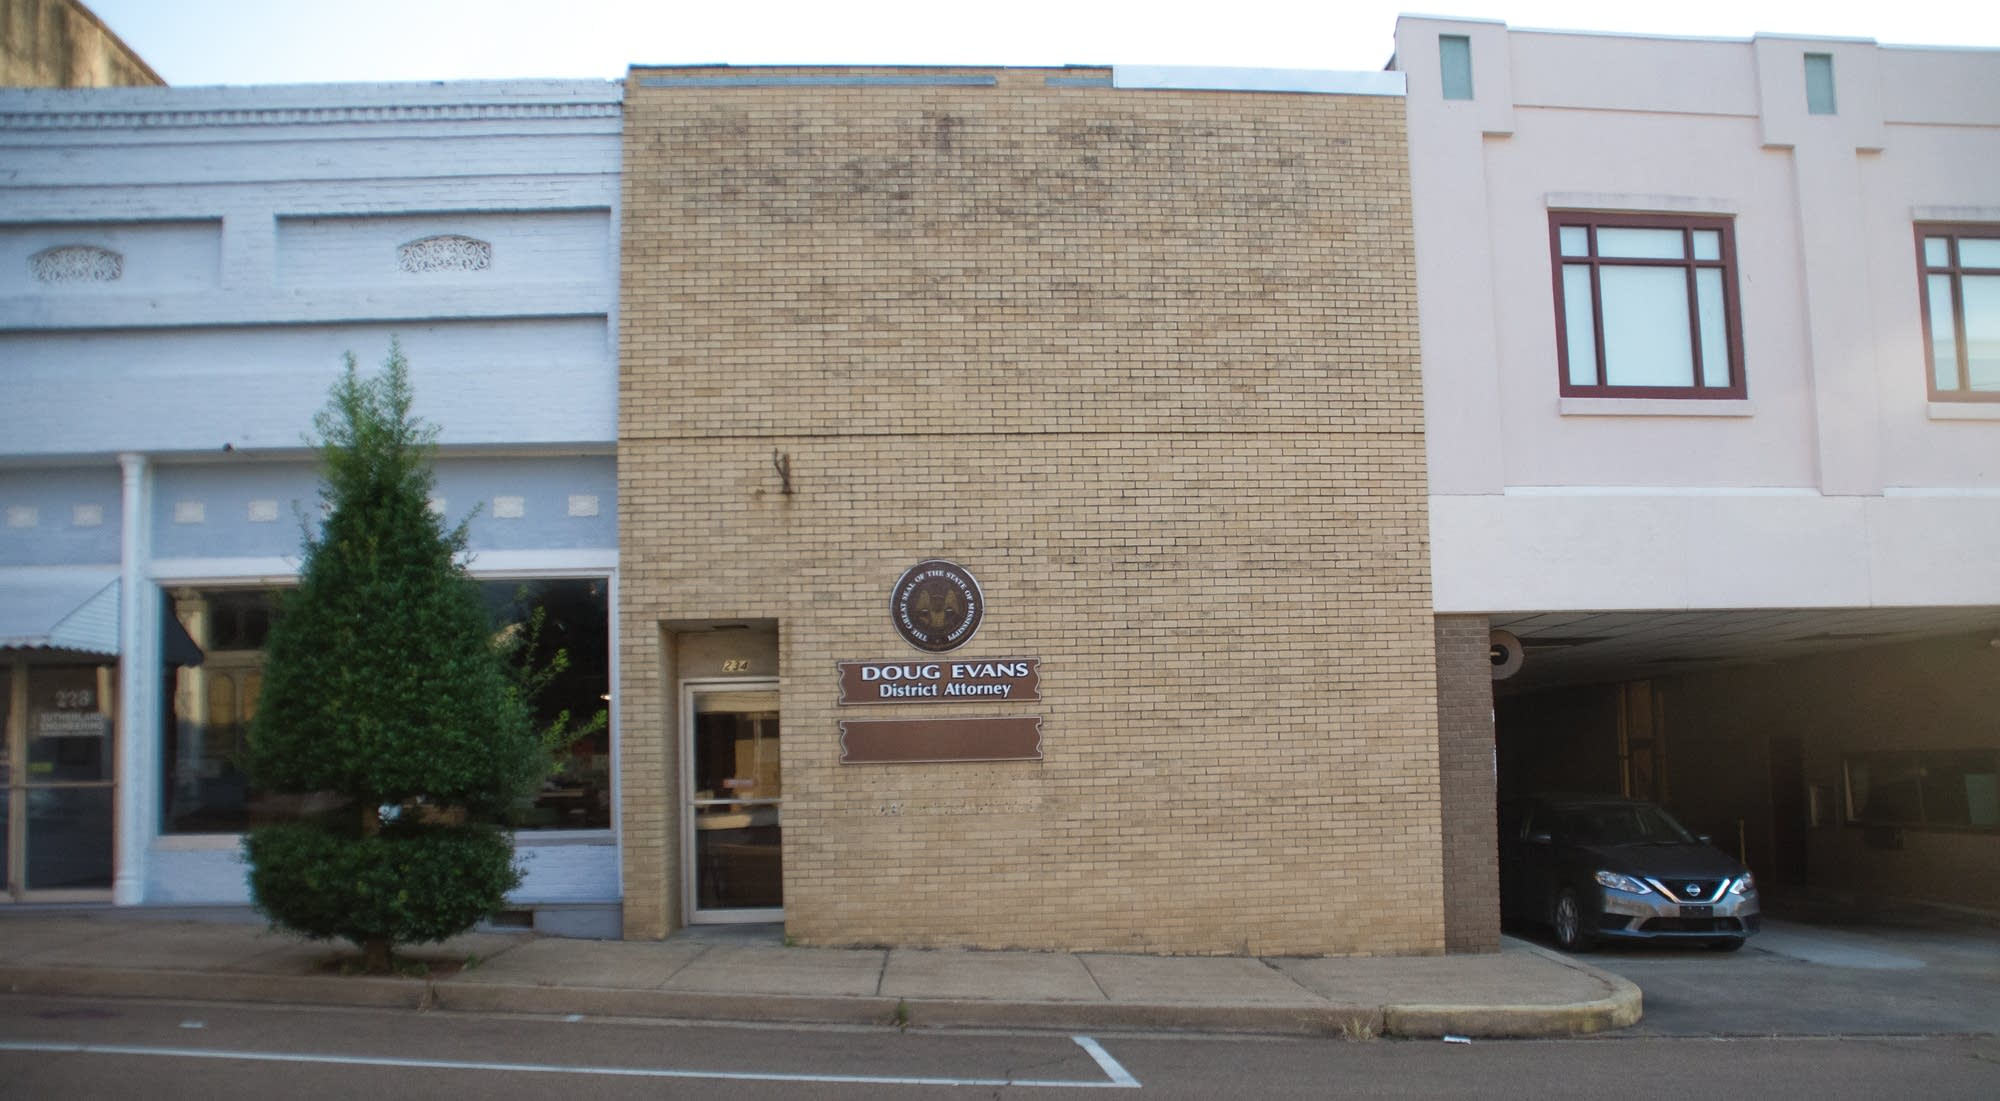 District attorney Doug Evans' office in Grenada, Mississippi.